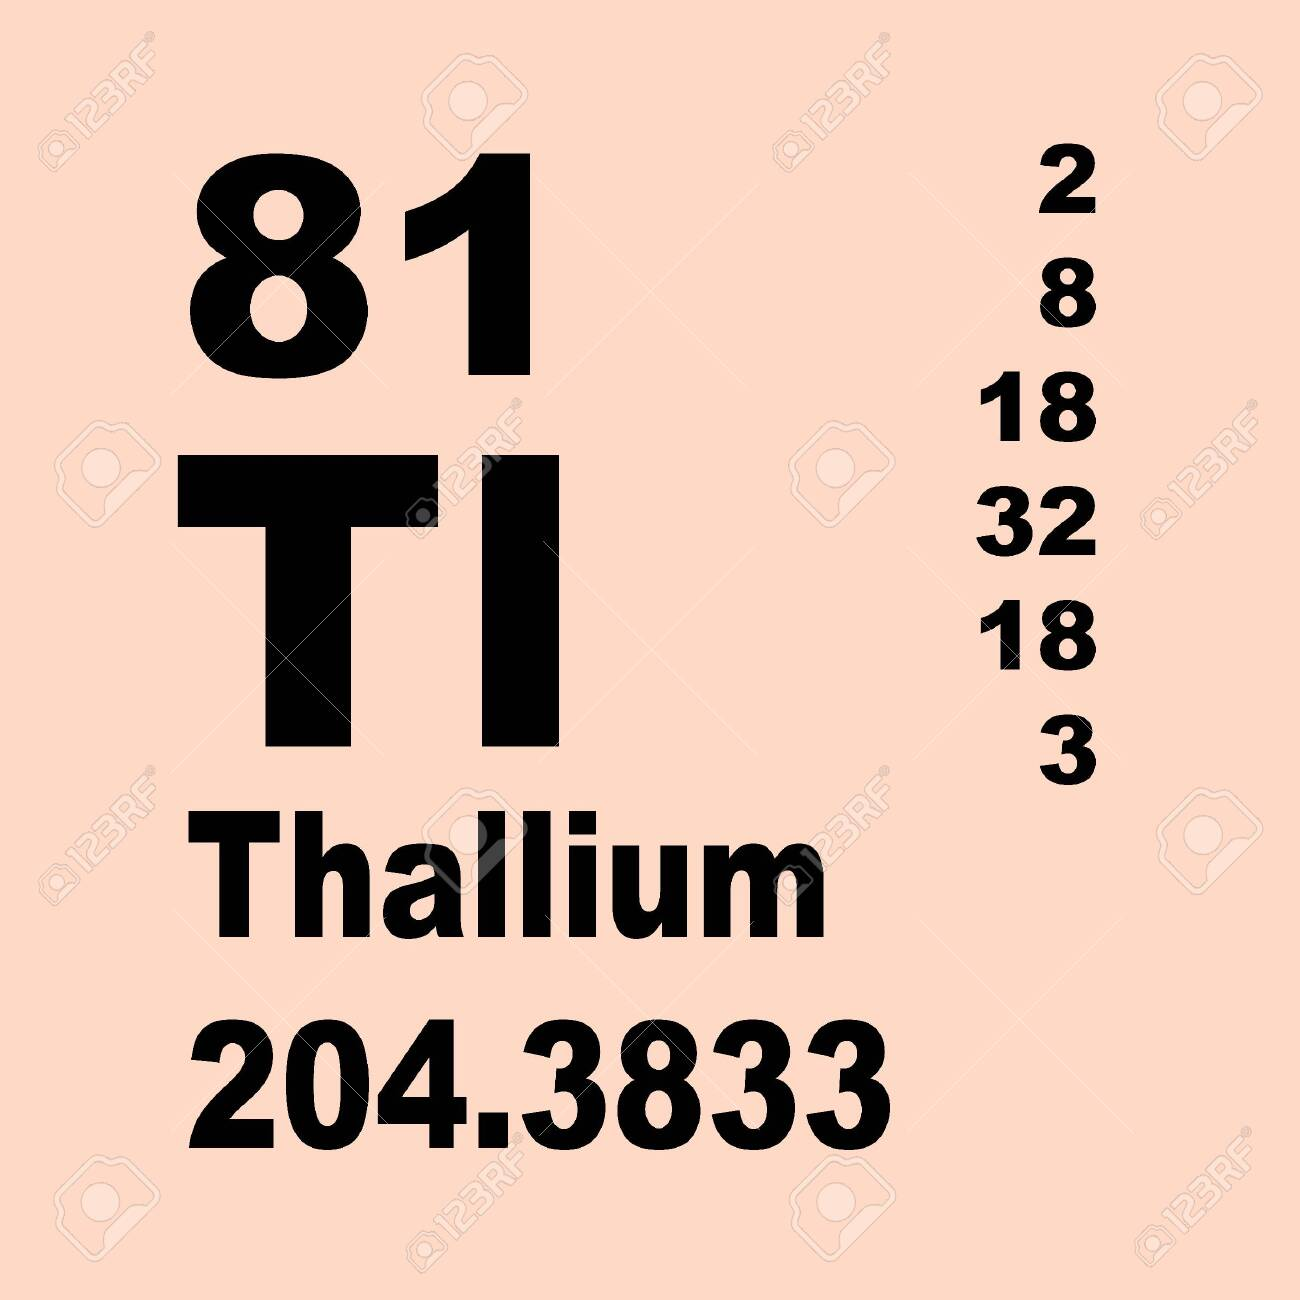 What element has atomic number 81